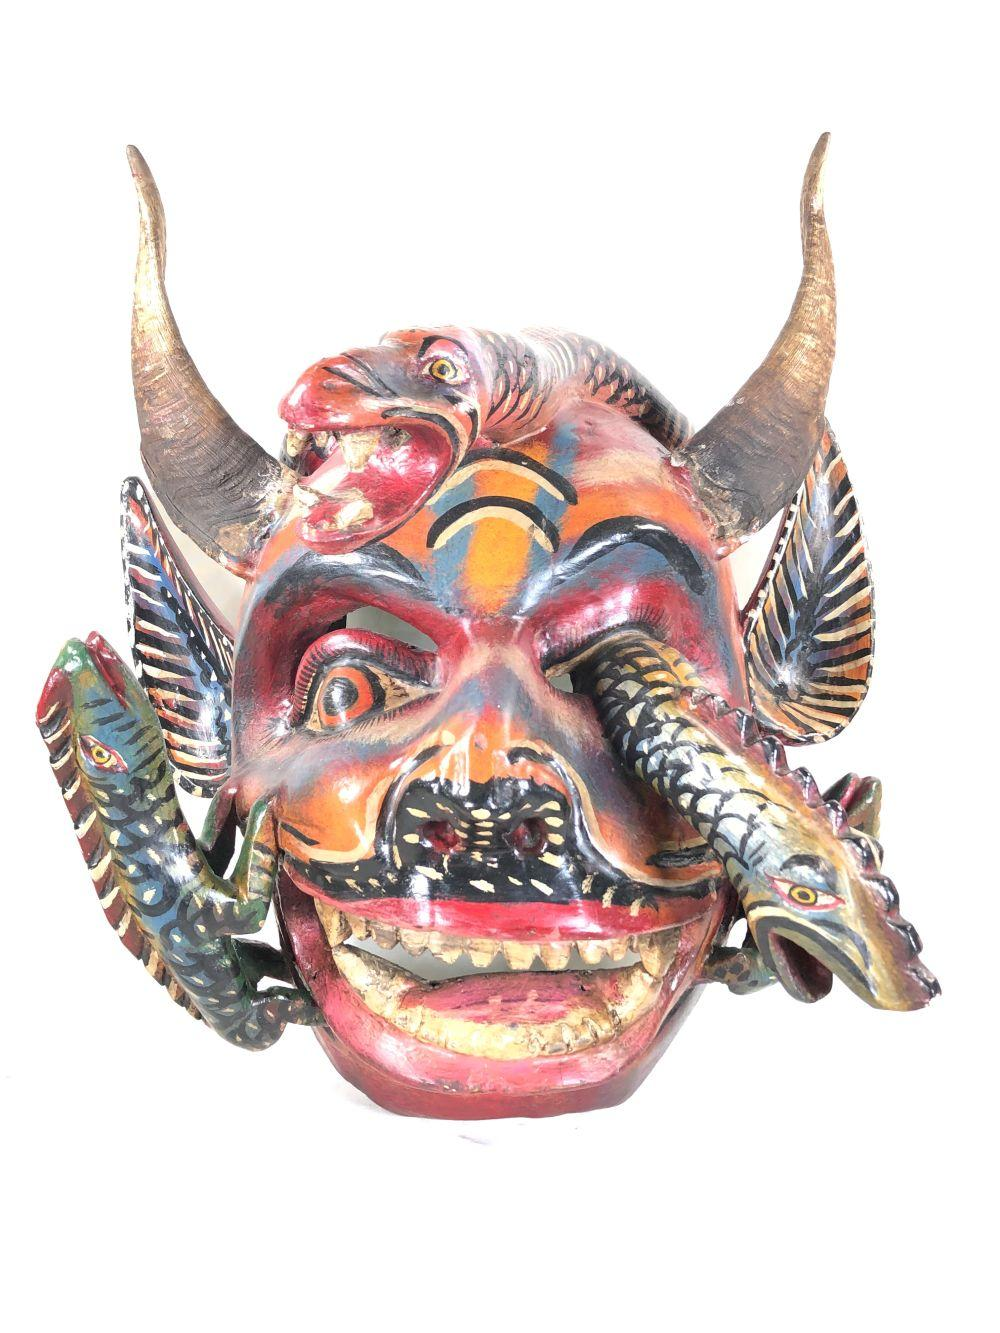 Mid 20th C. Mexican Wood Carved Ceremonial Mask